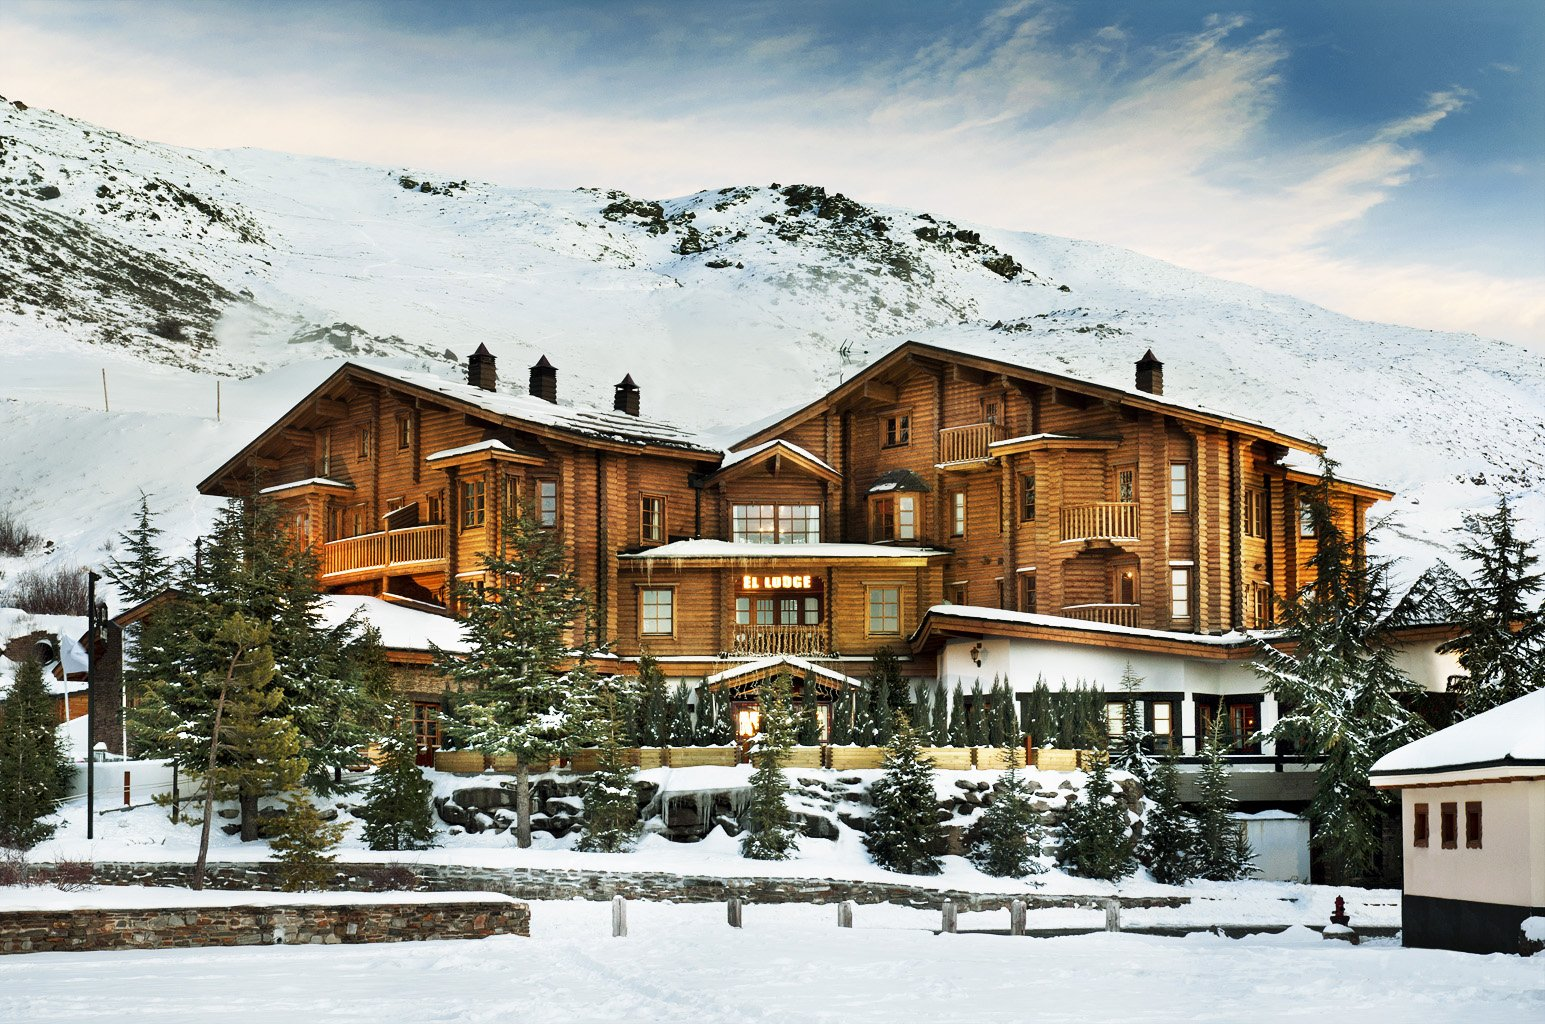 Lodge Ski & Spa, un refugio alpino de lujo en Sierra Nevada